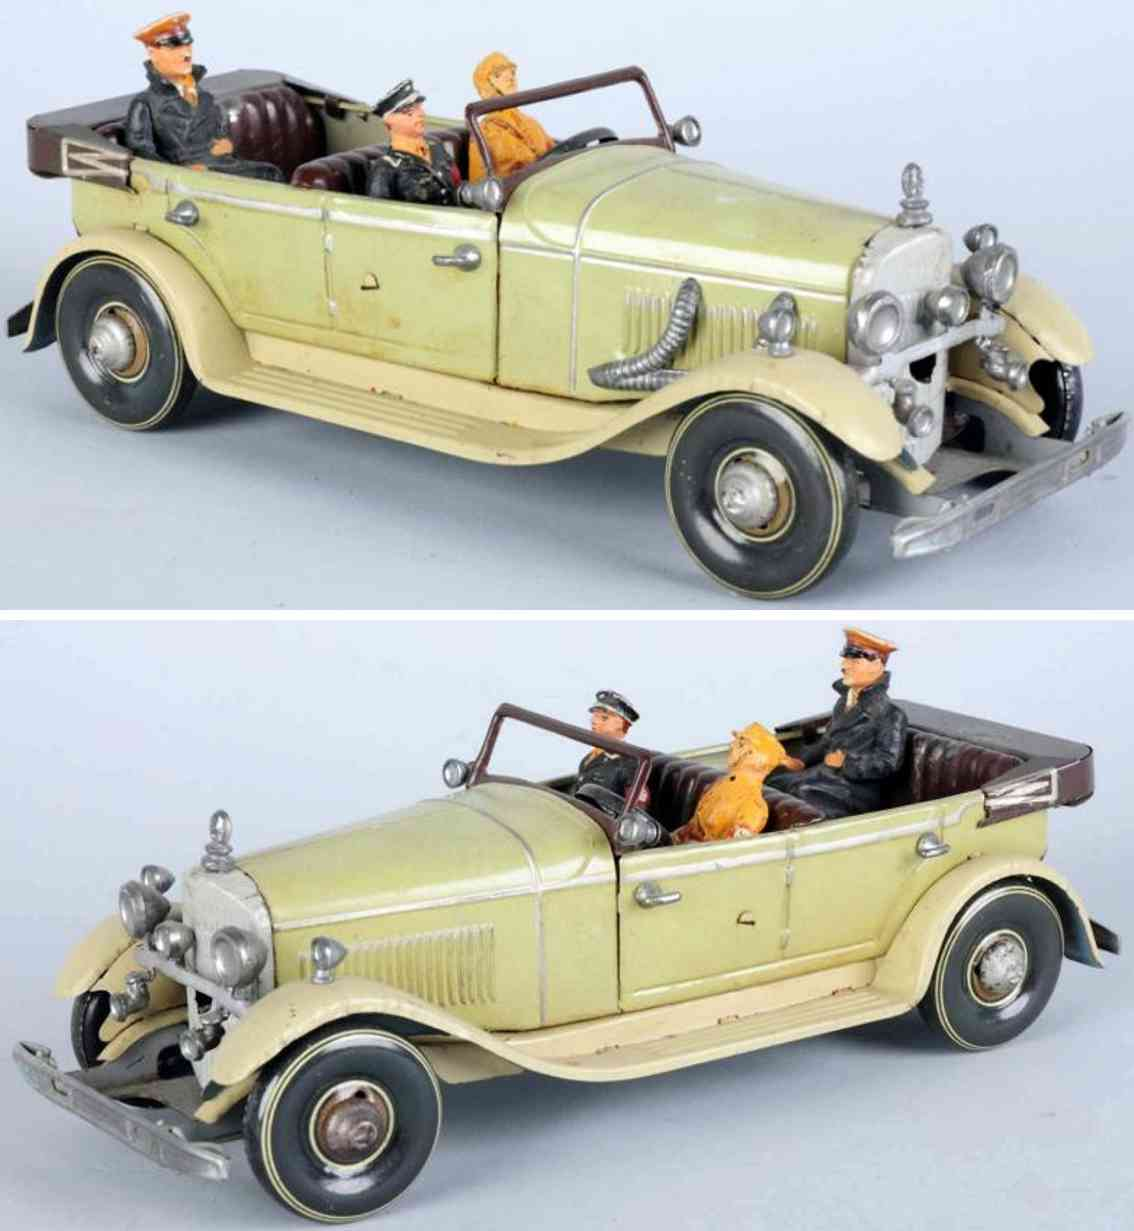 tippco 934 military toy car tan version mercedes with hitler